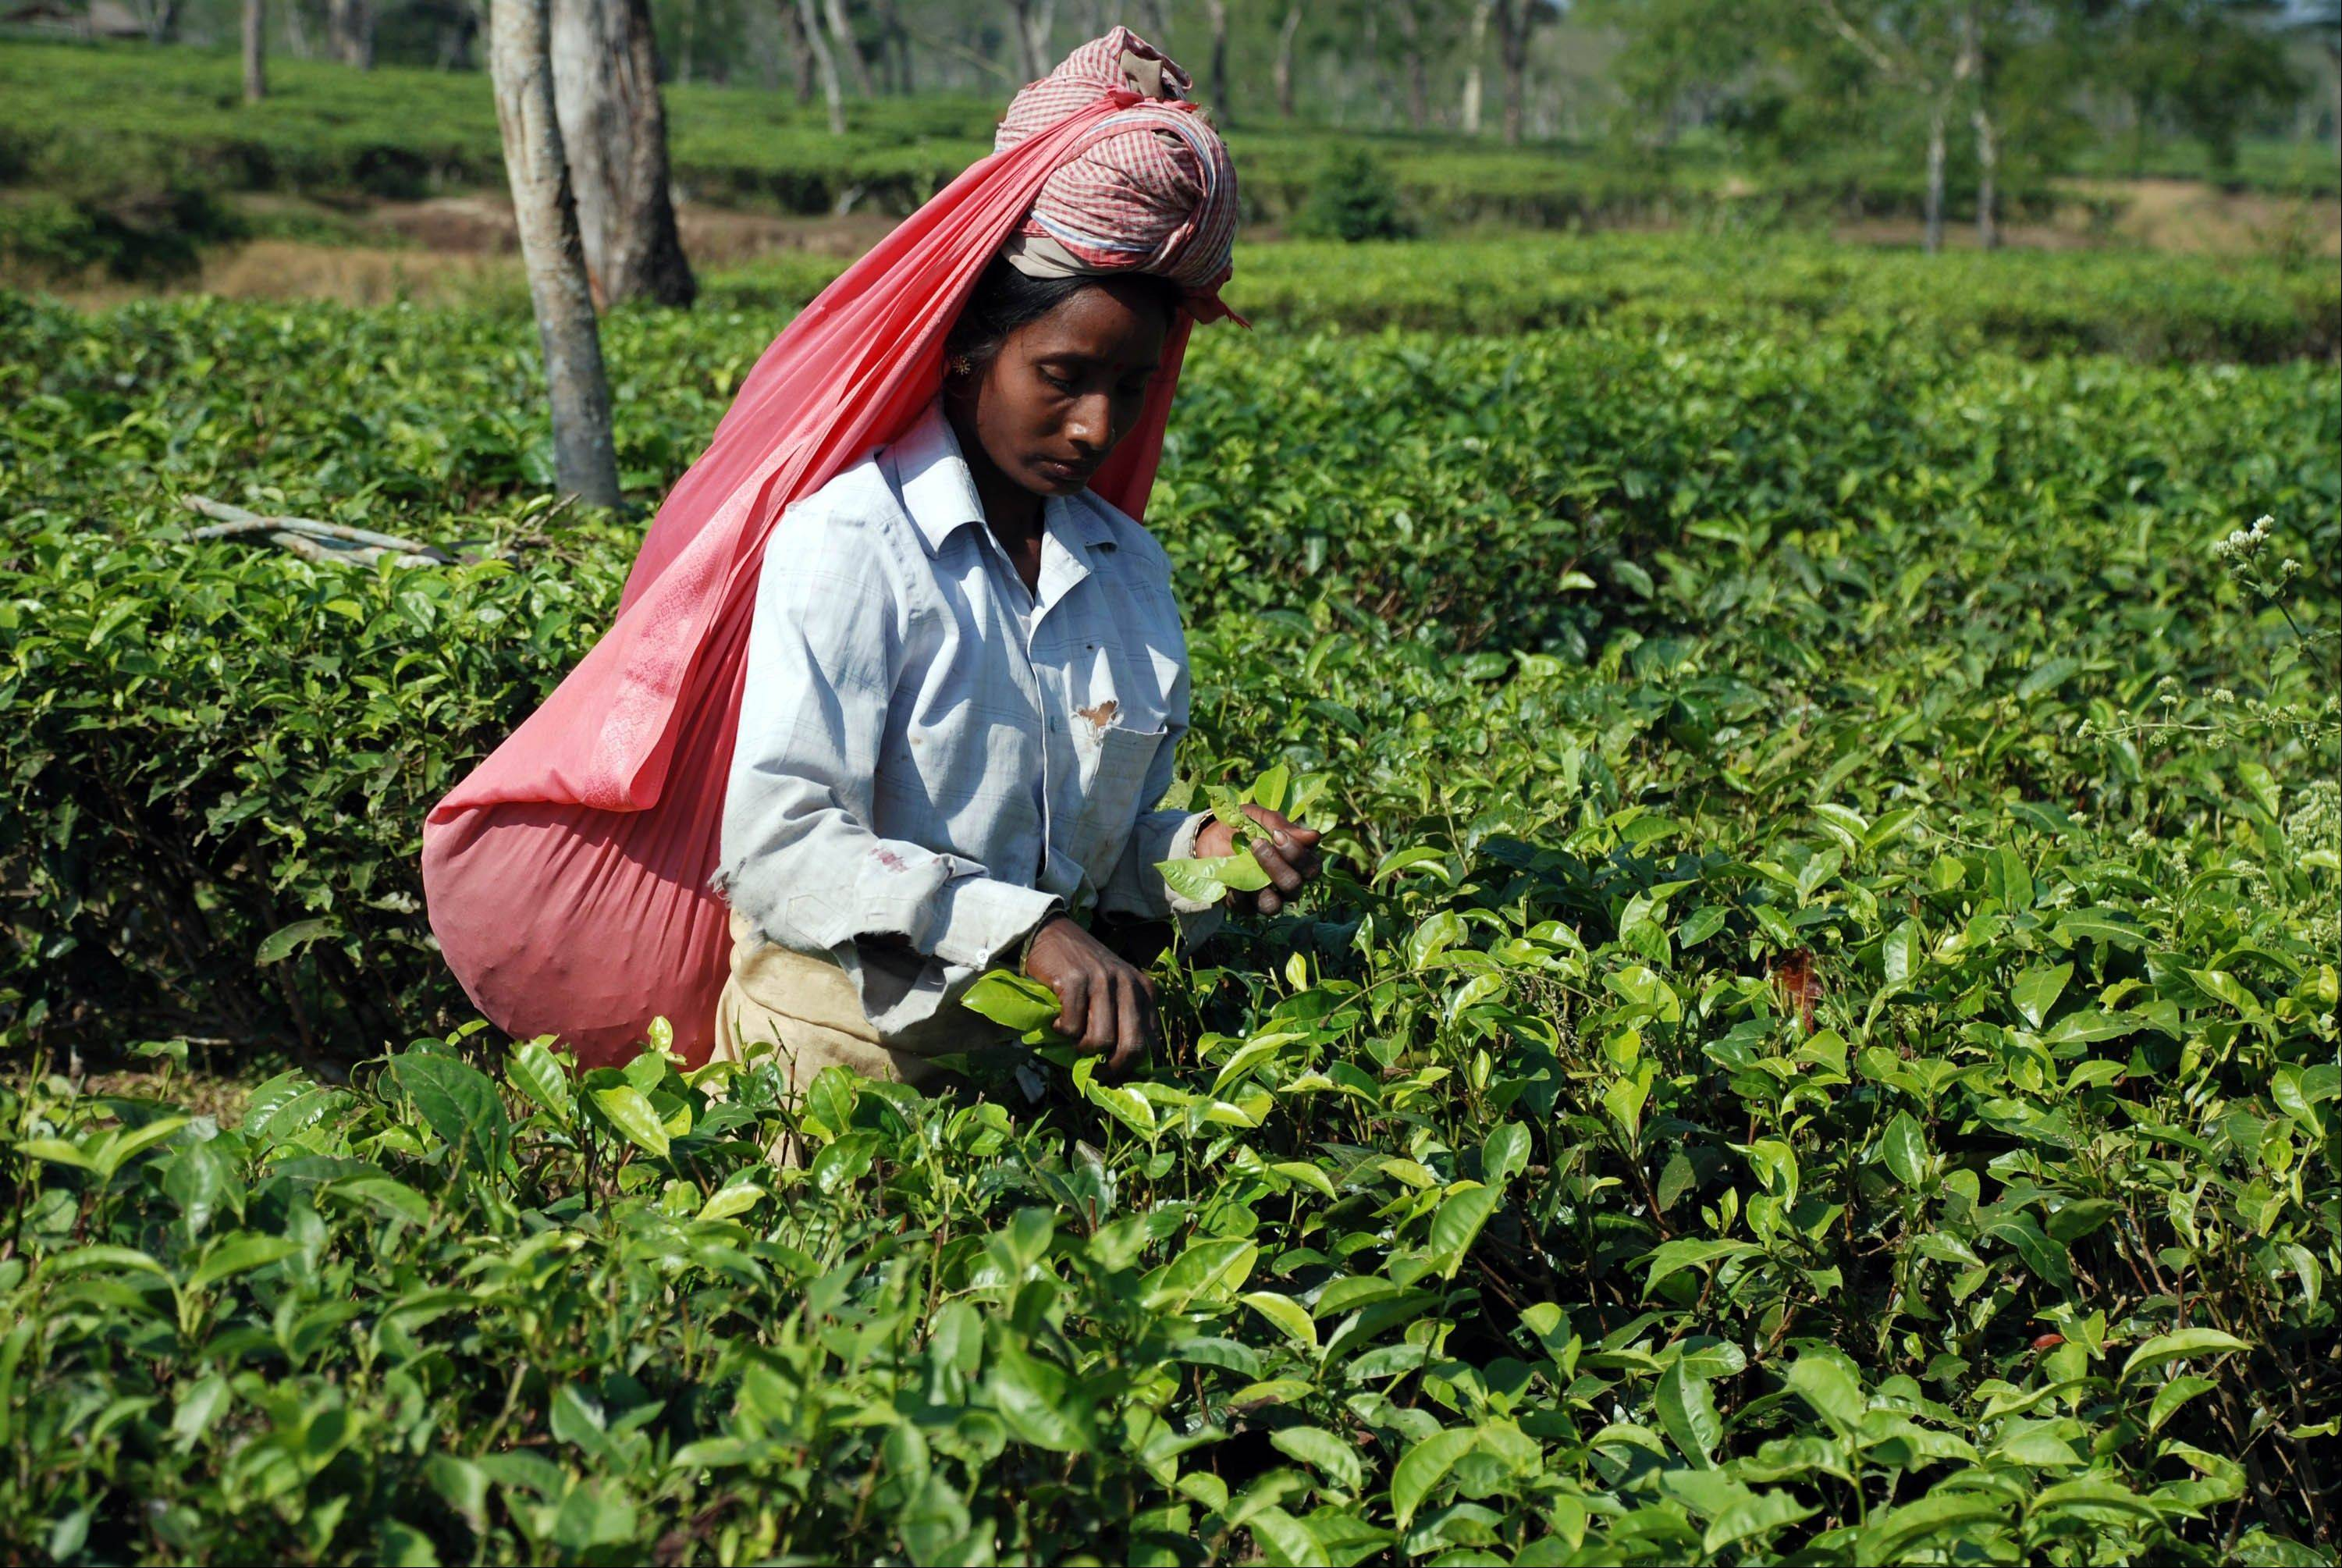 A tea plucker works on the Gatoonga Tea Estate in Jorhat in Assam, India. Assam is a must for tourists interested in tea and the lifestyle of its planters.